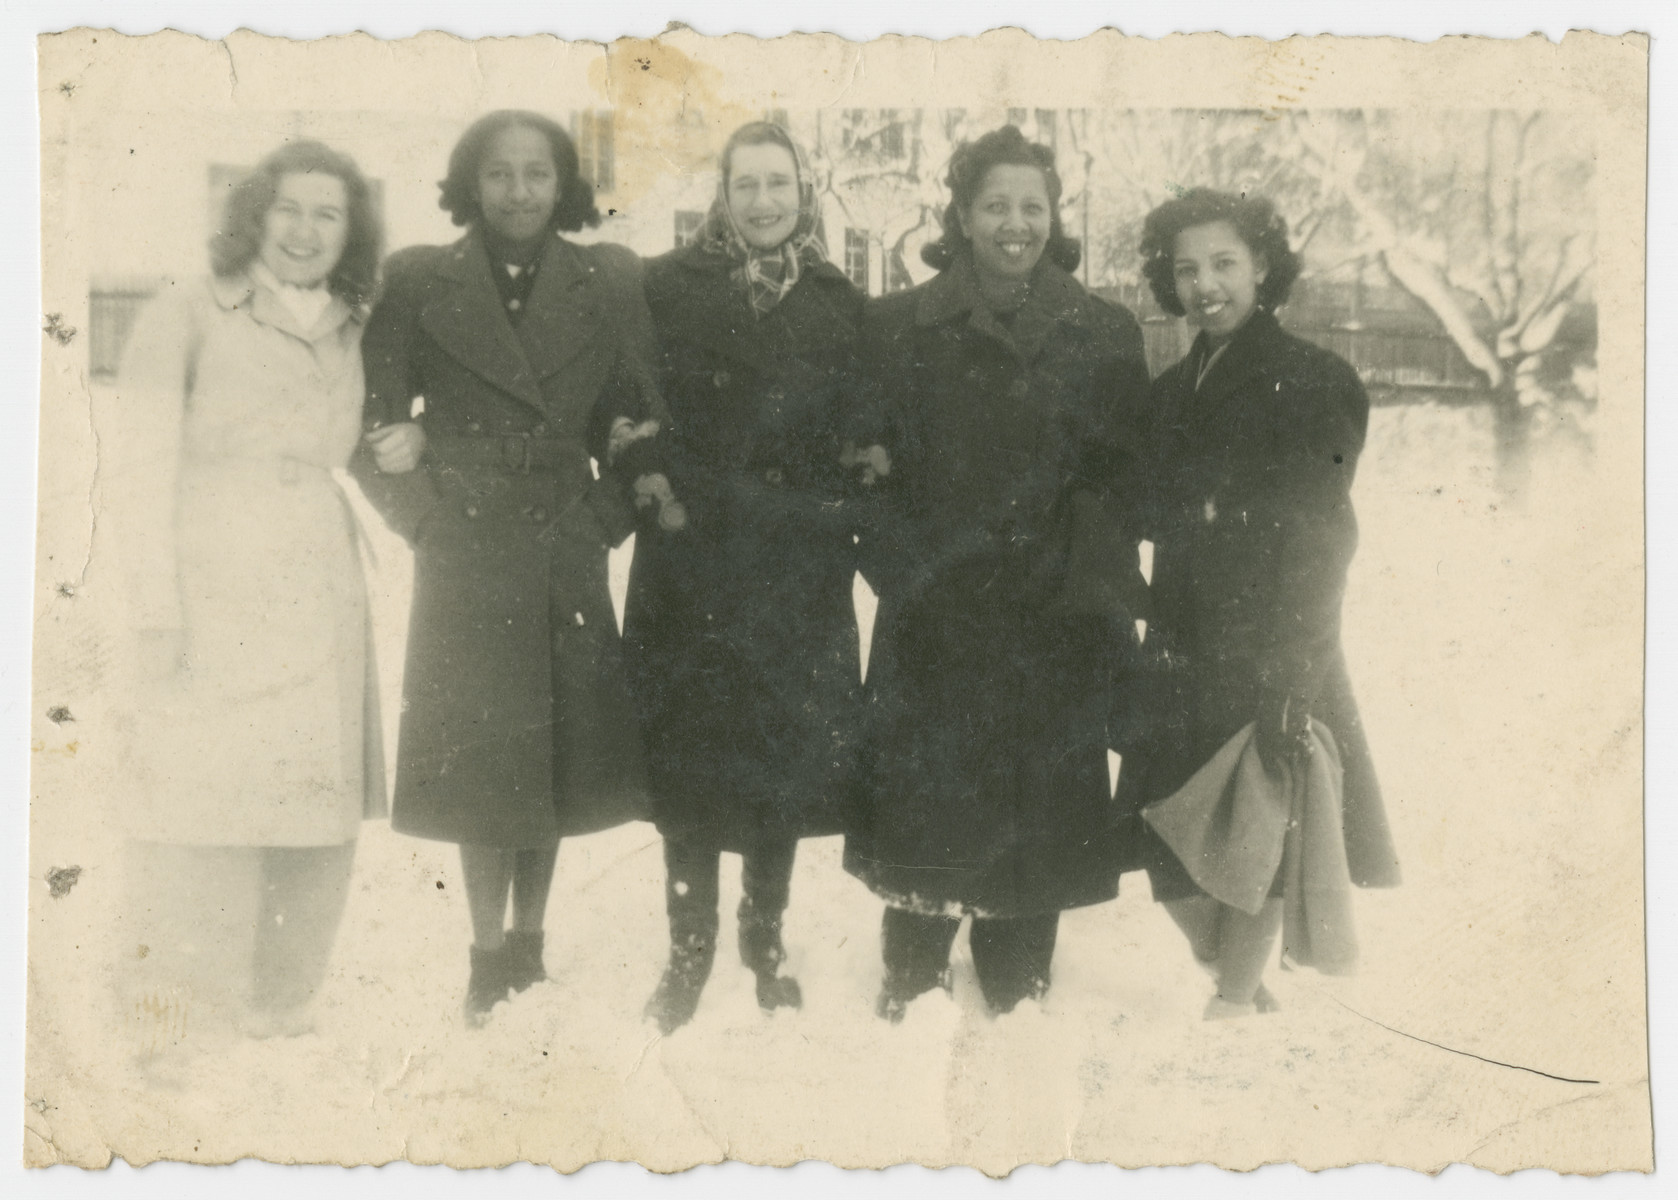 Five women stand in the snow on the grounds of the Liebenau internment camp.  Among those pictured are Ida, Marilyn and Jacqueline Johnson.